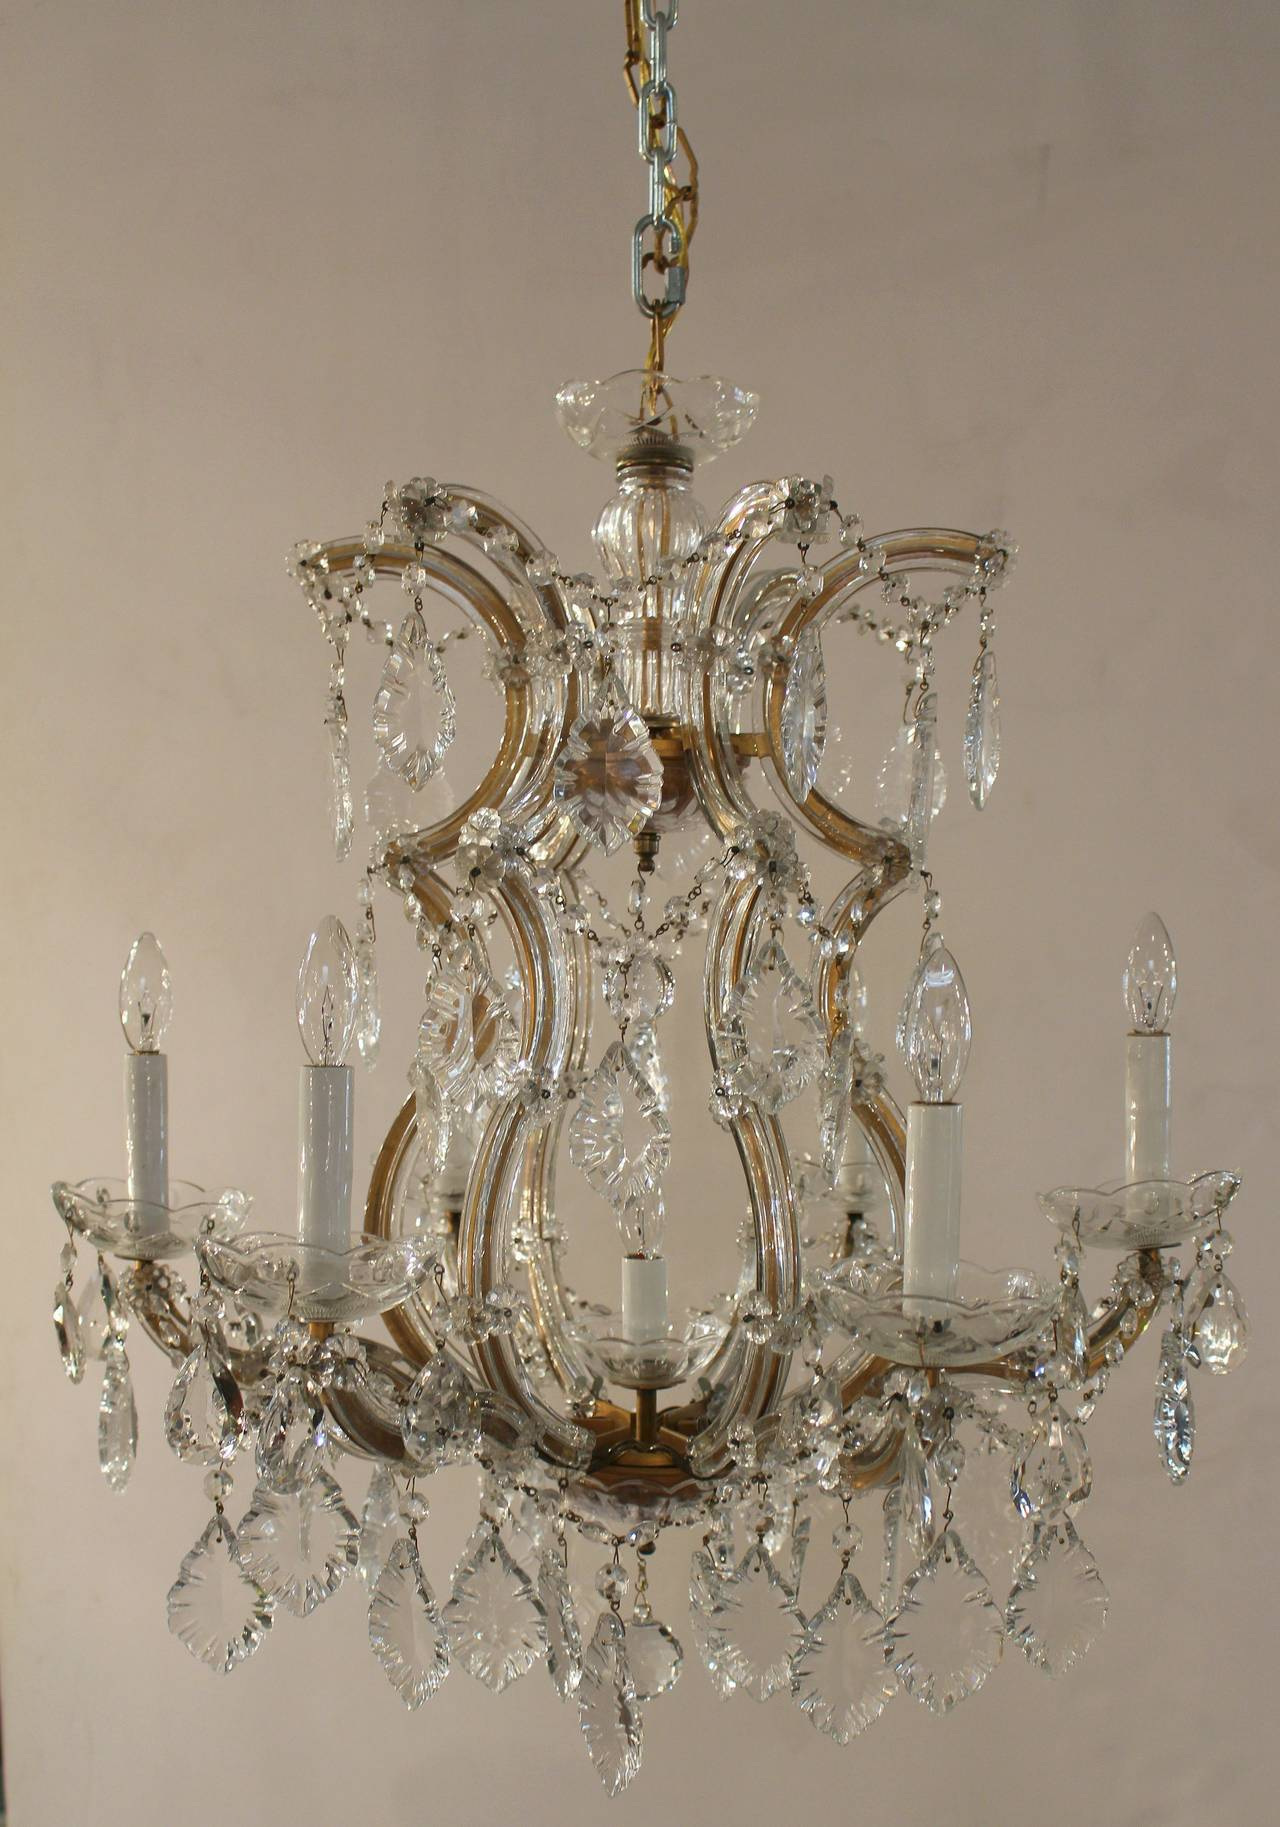 A lovely Maria Theresa seven light chandelier or